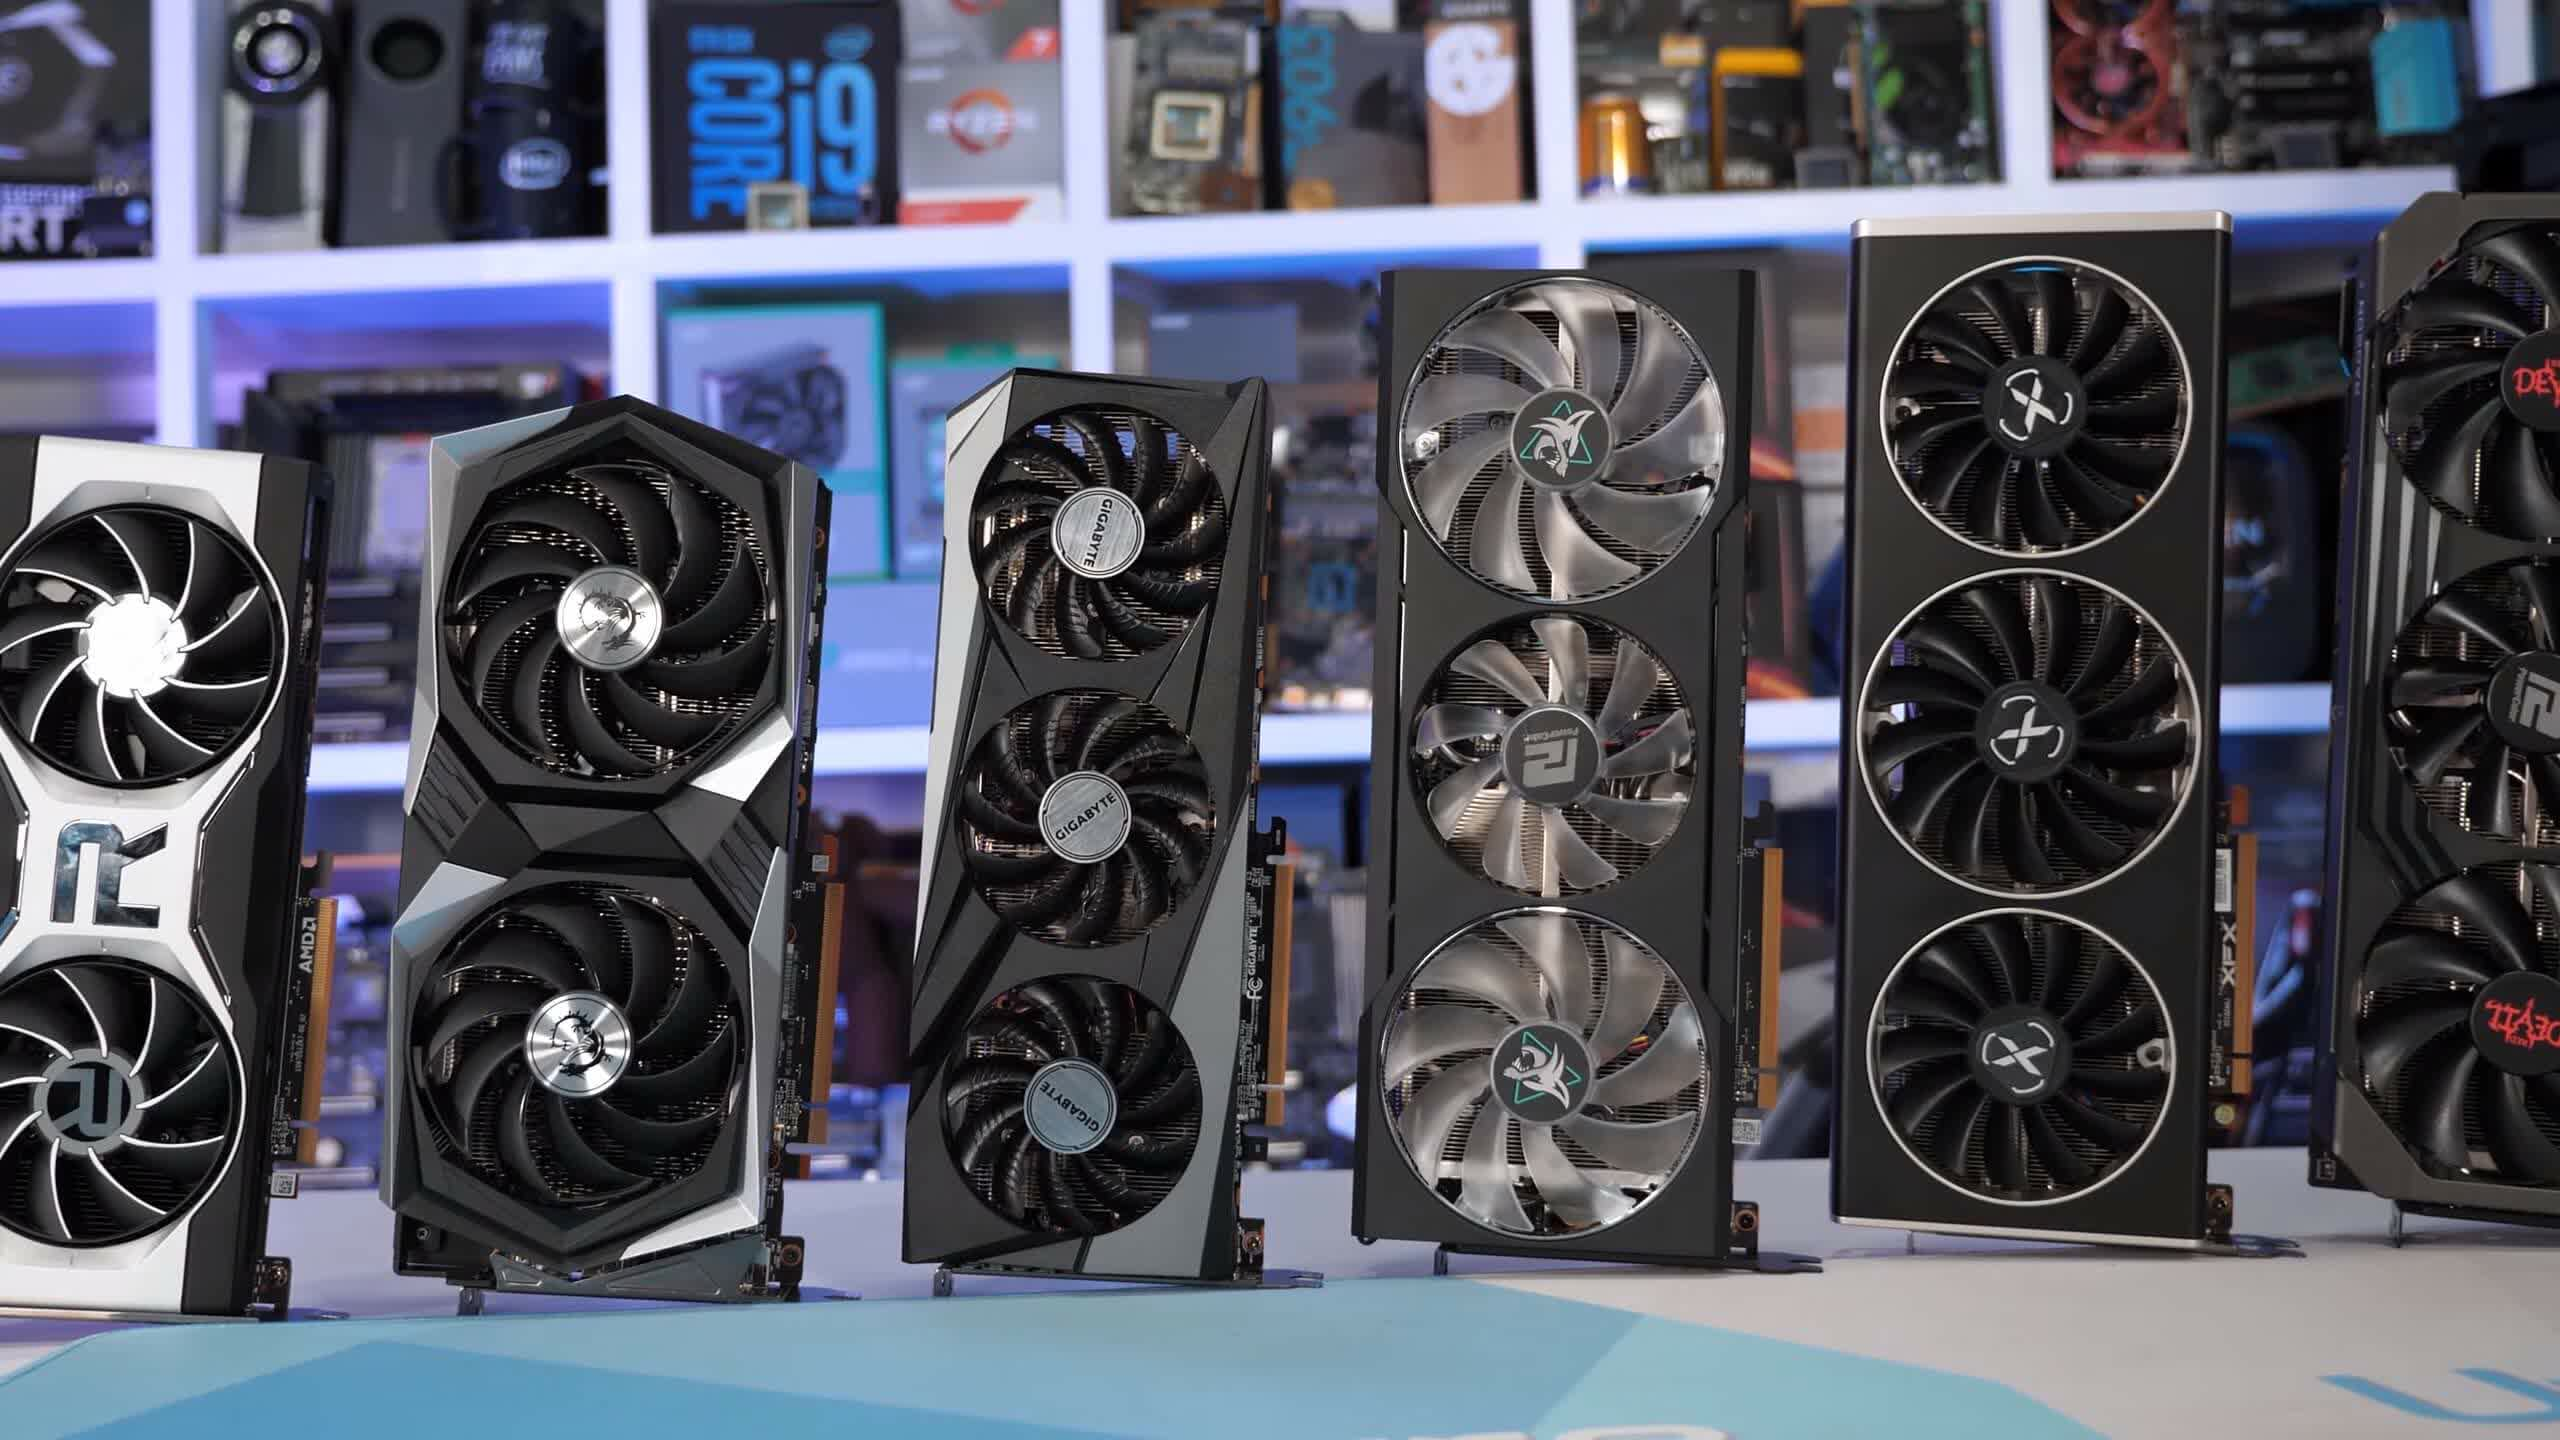 Graphics card prices are no longer falling rapidly